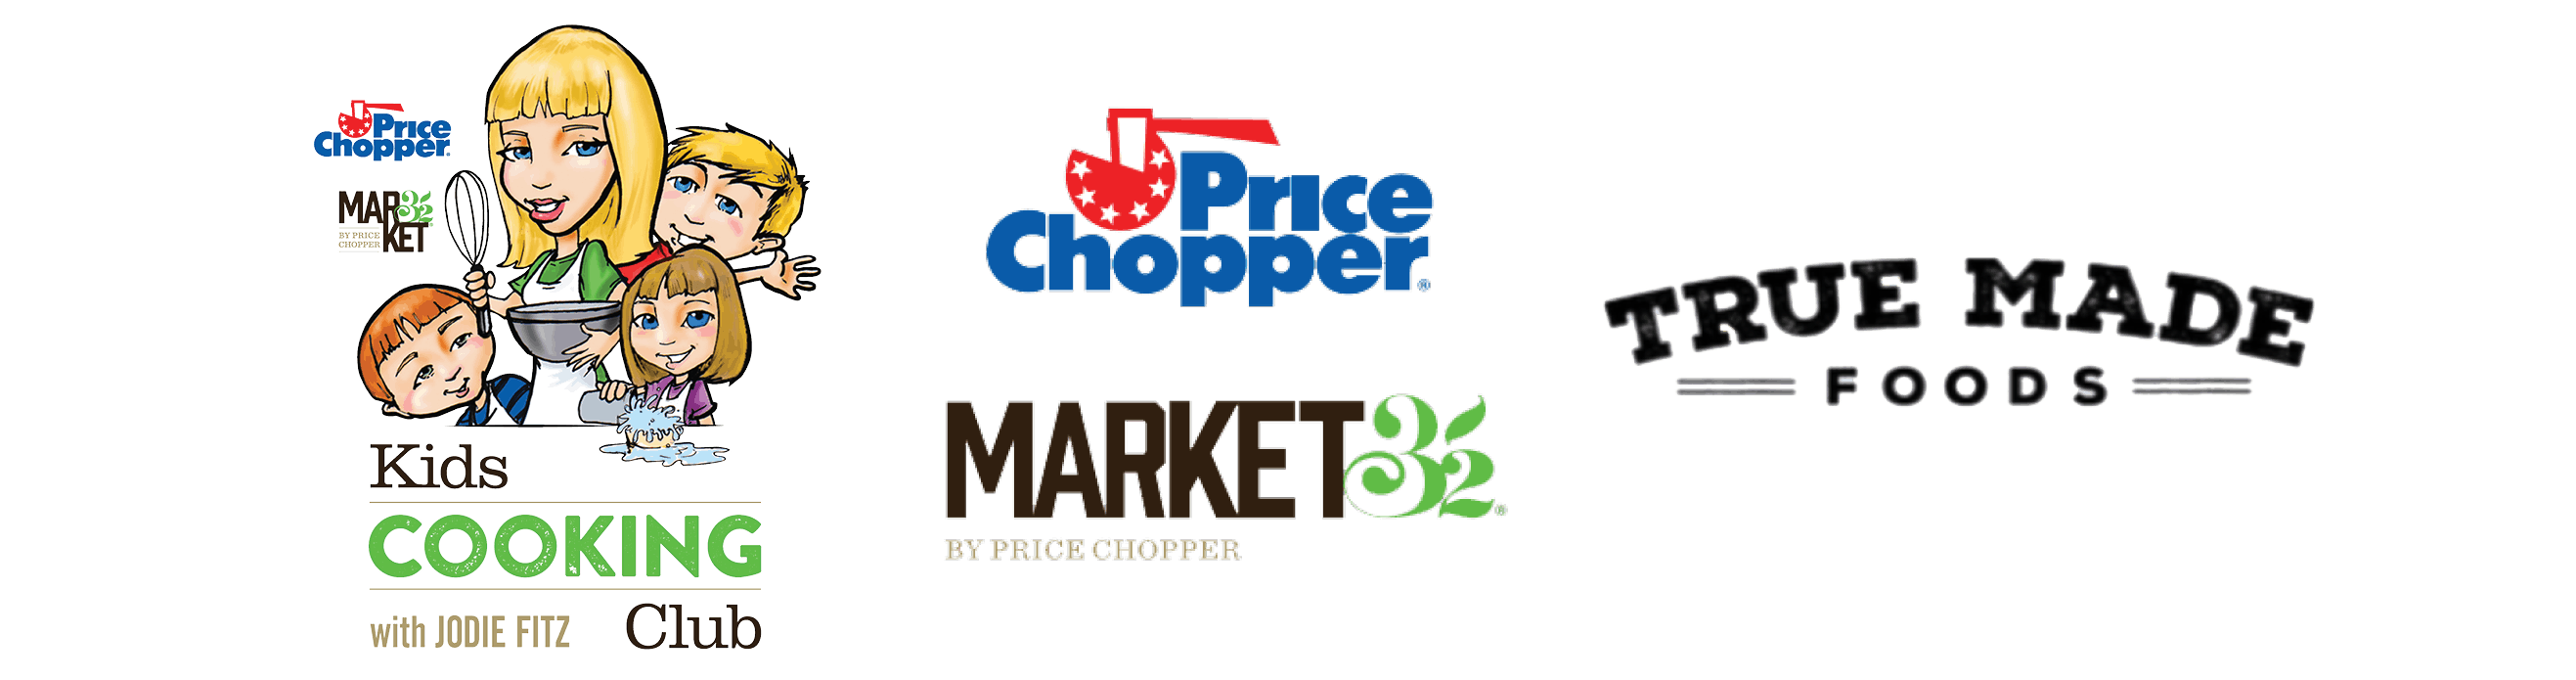 Kids Cooking Club, Price Chopper Market 32, and True Made Foods Logos arranged in a row